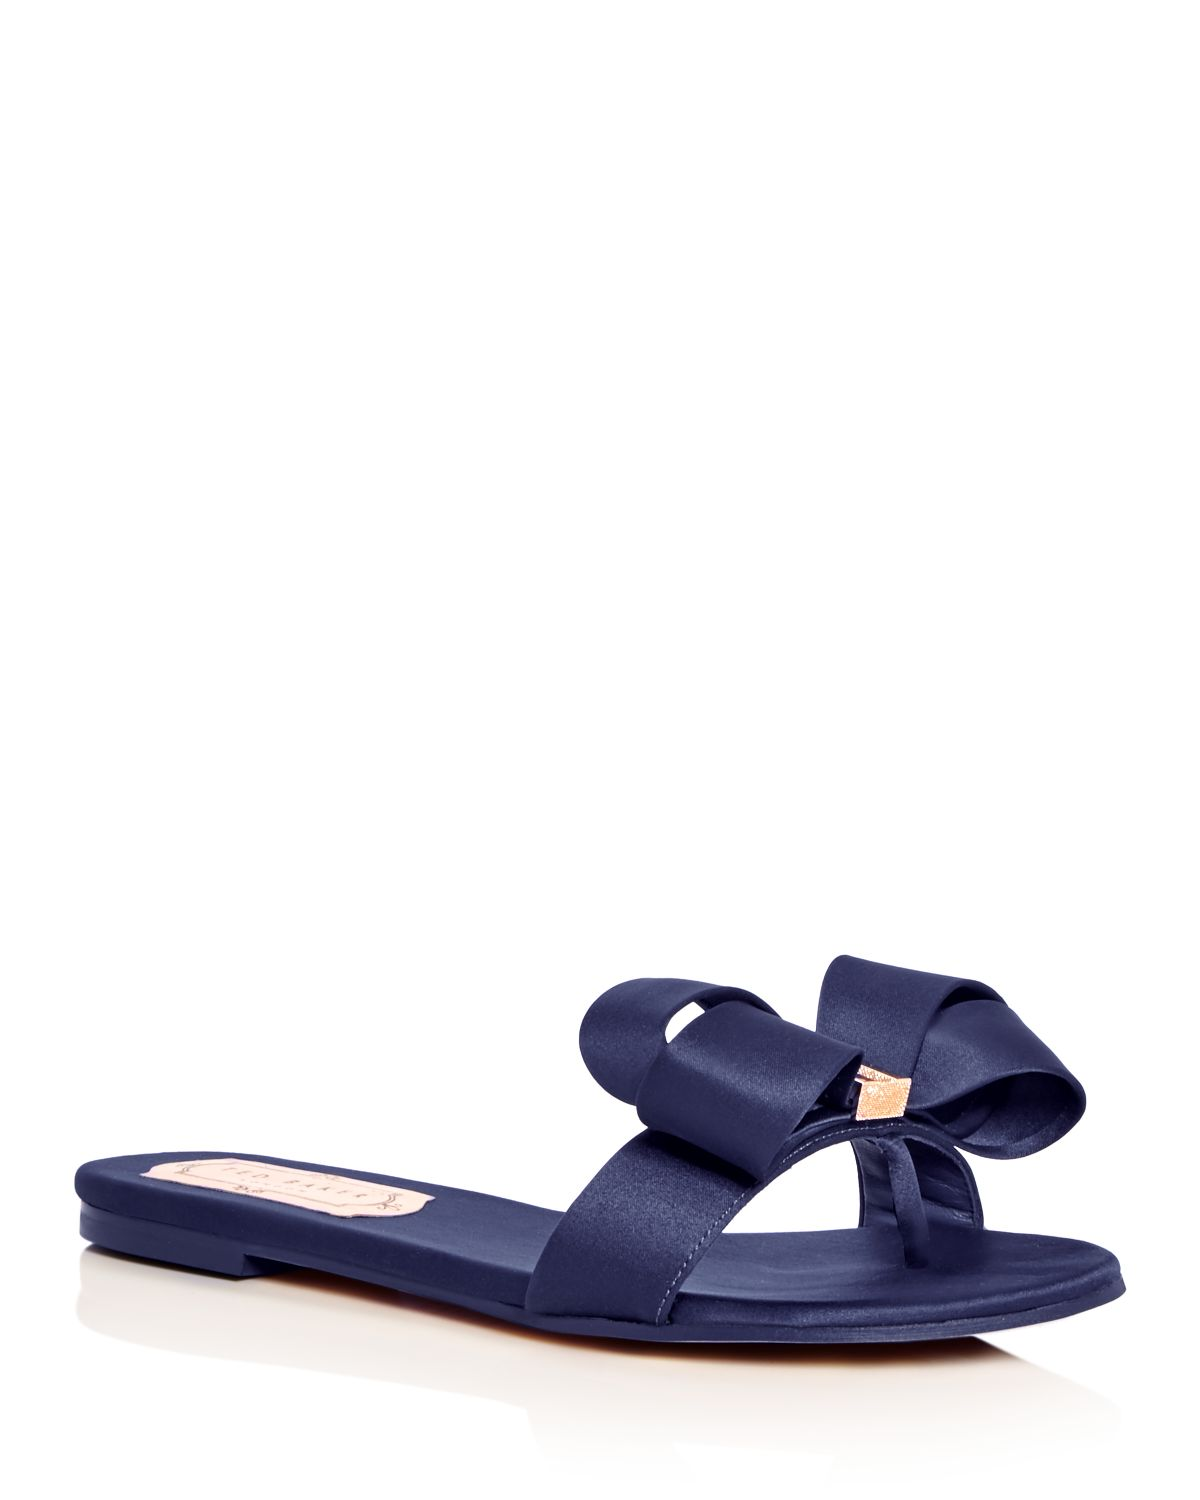 Women's Beauita Satin Bow Slide Sandals by Ted Baker